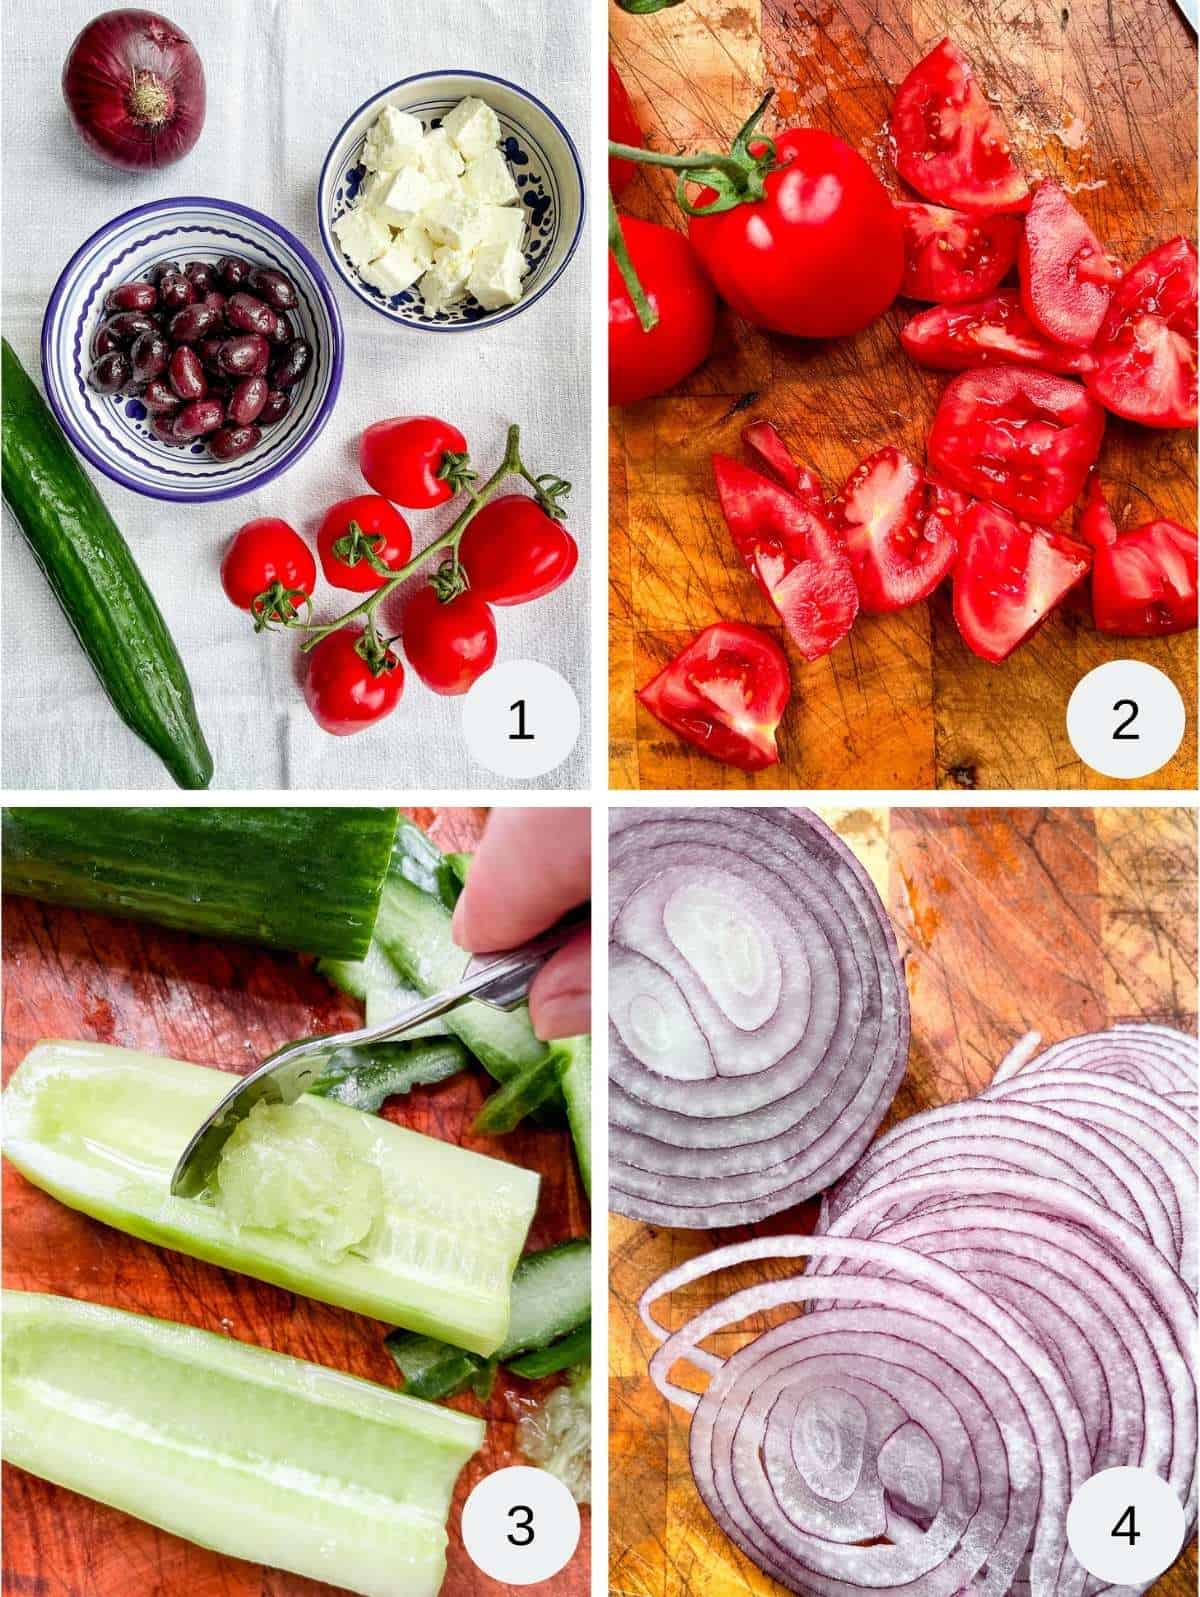 A collage of pictures showing the process of making Greek salad.